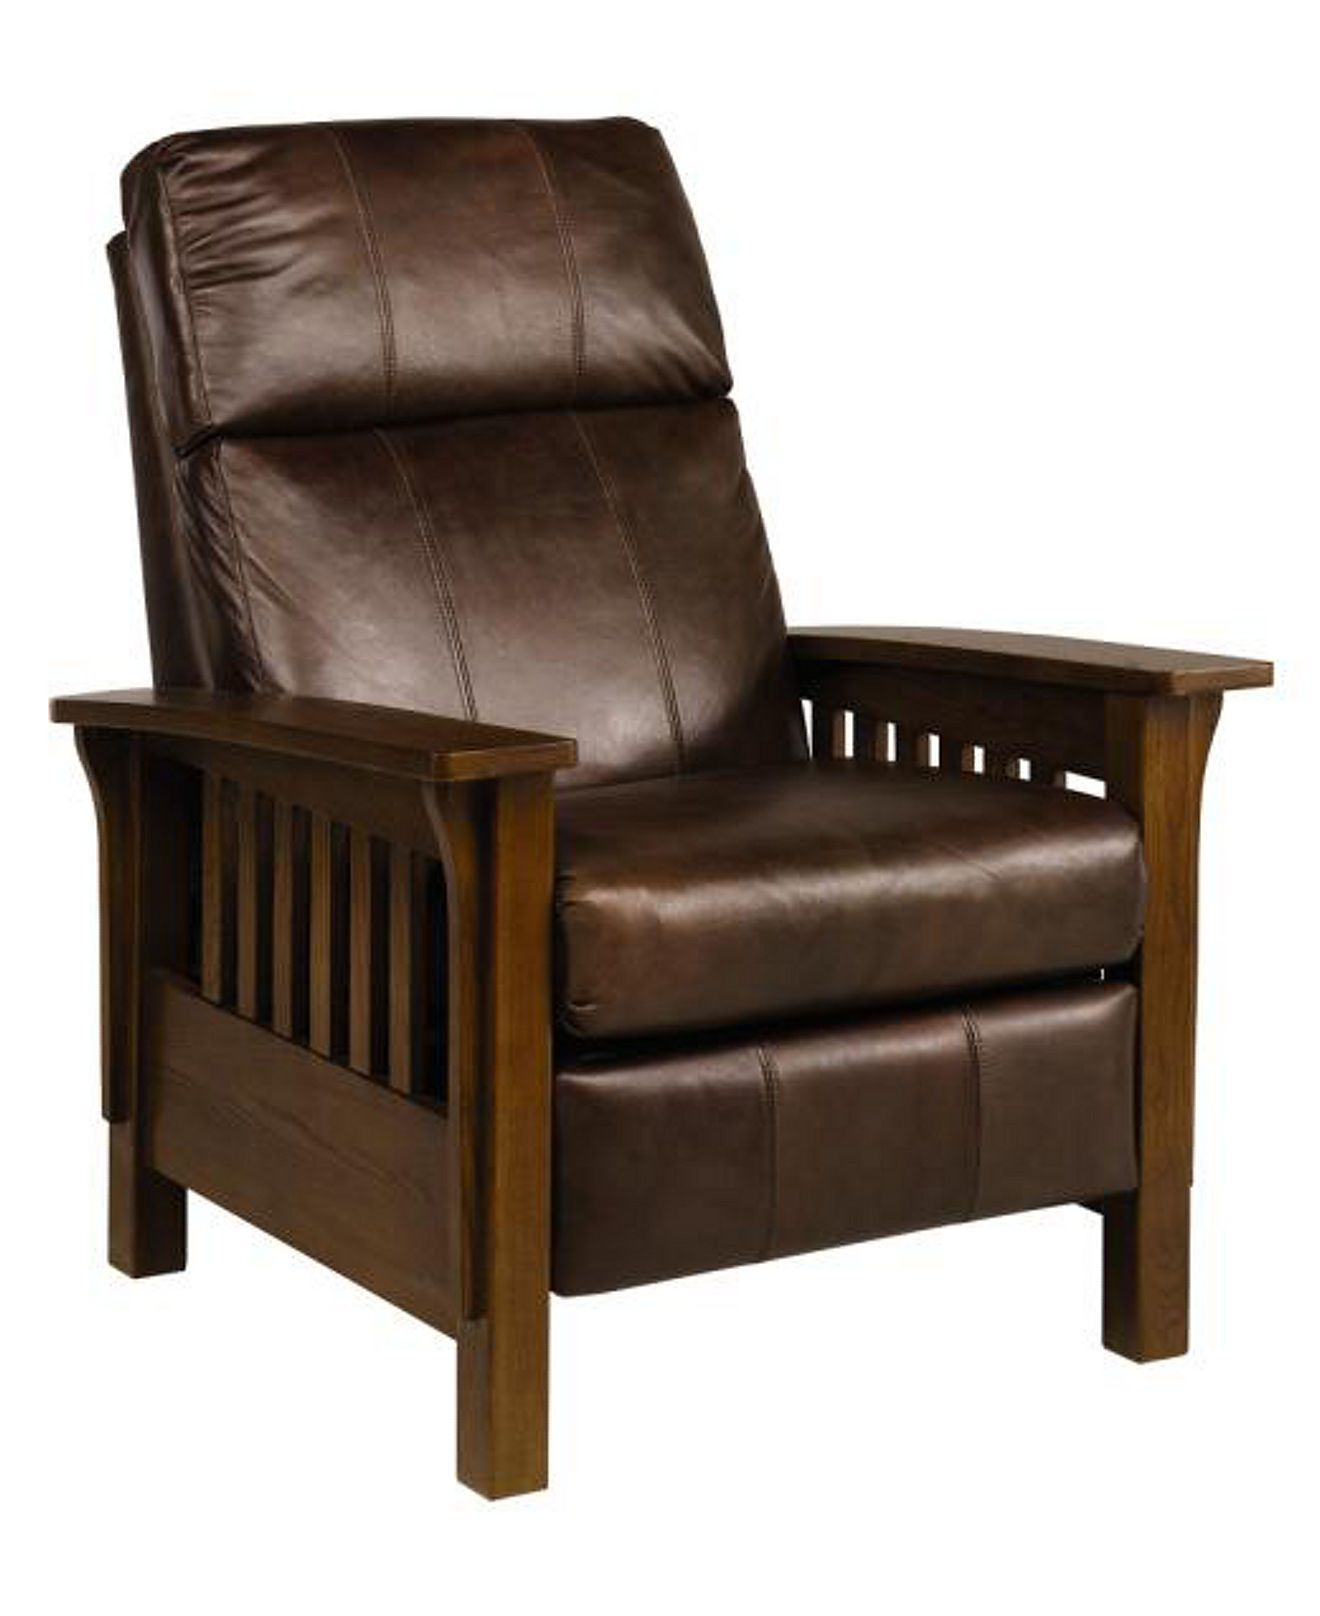 Nicolas Ii Mission Style Leather Recliner Chair